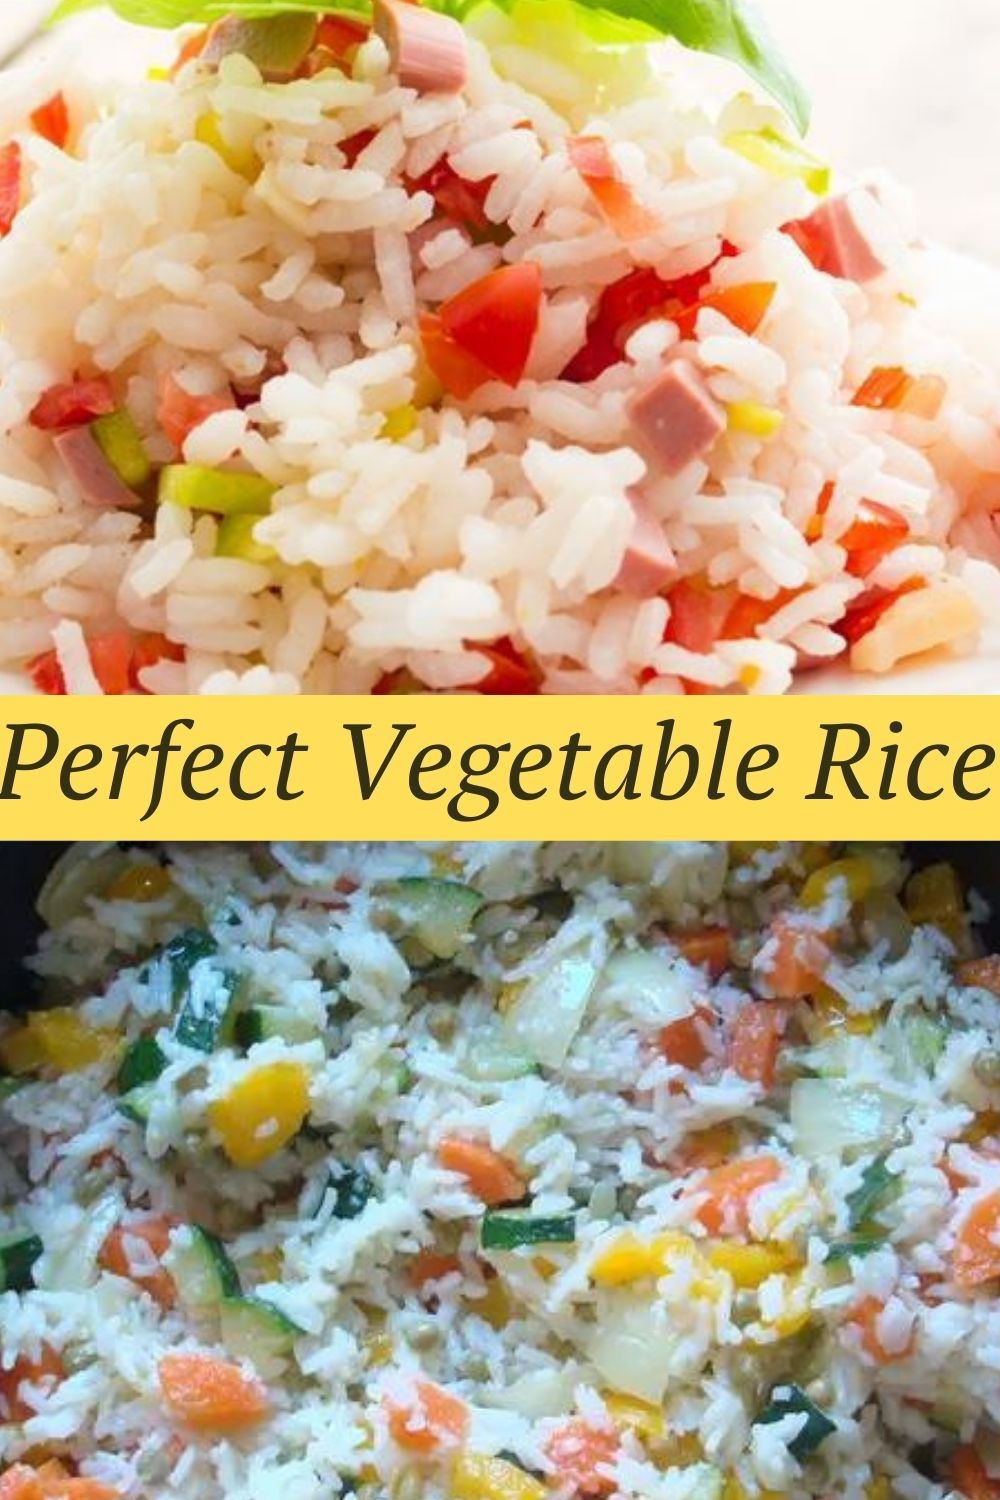 Perfect Vegetable Rice